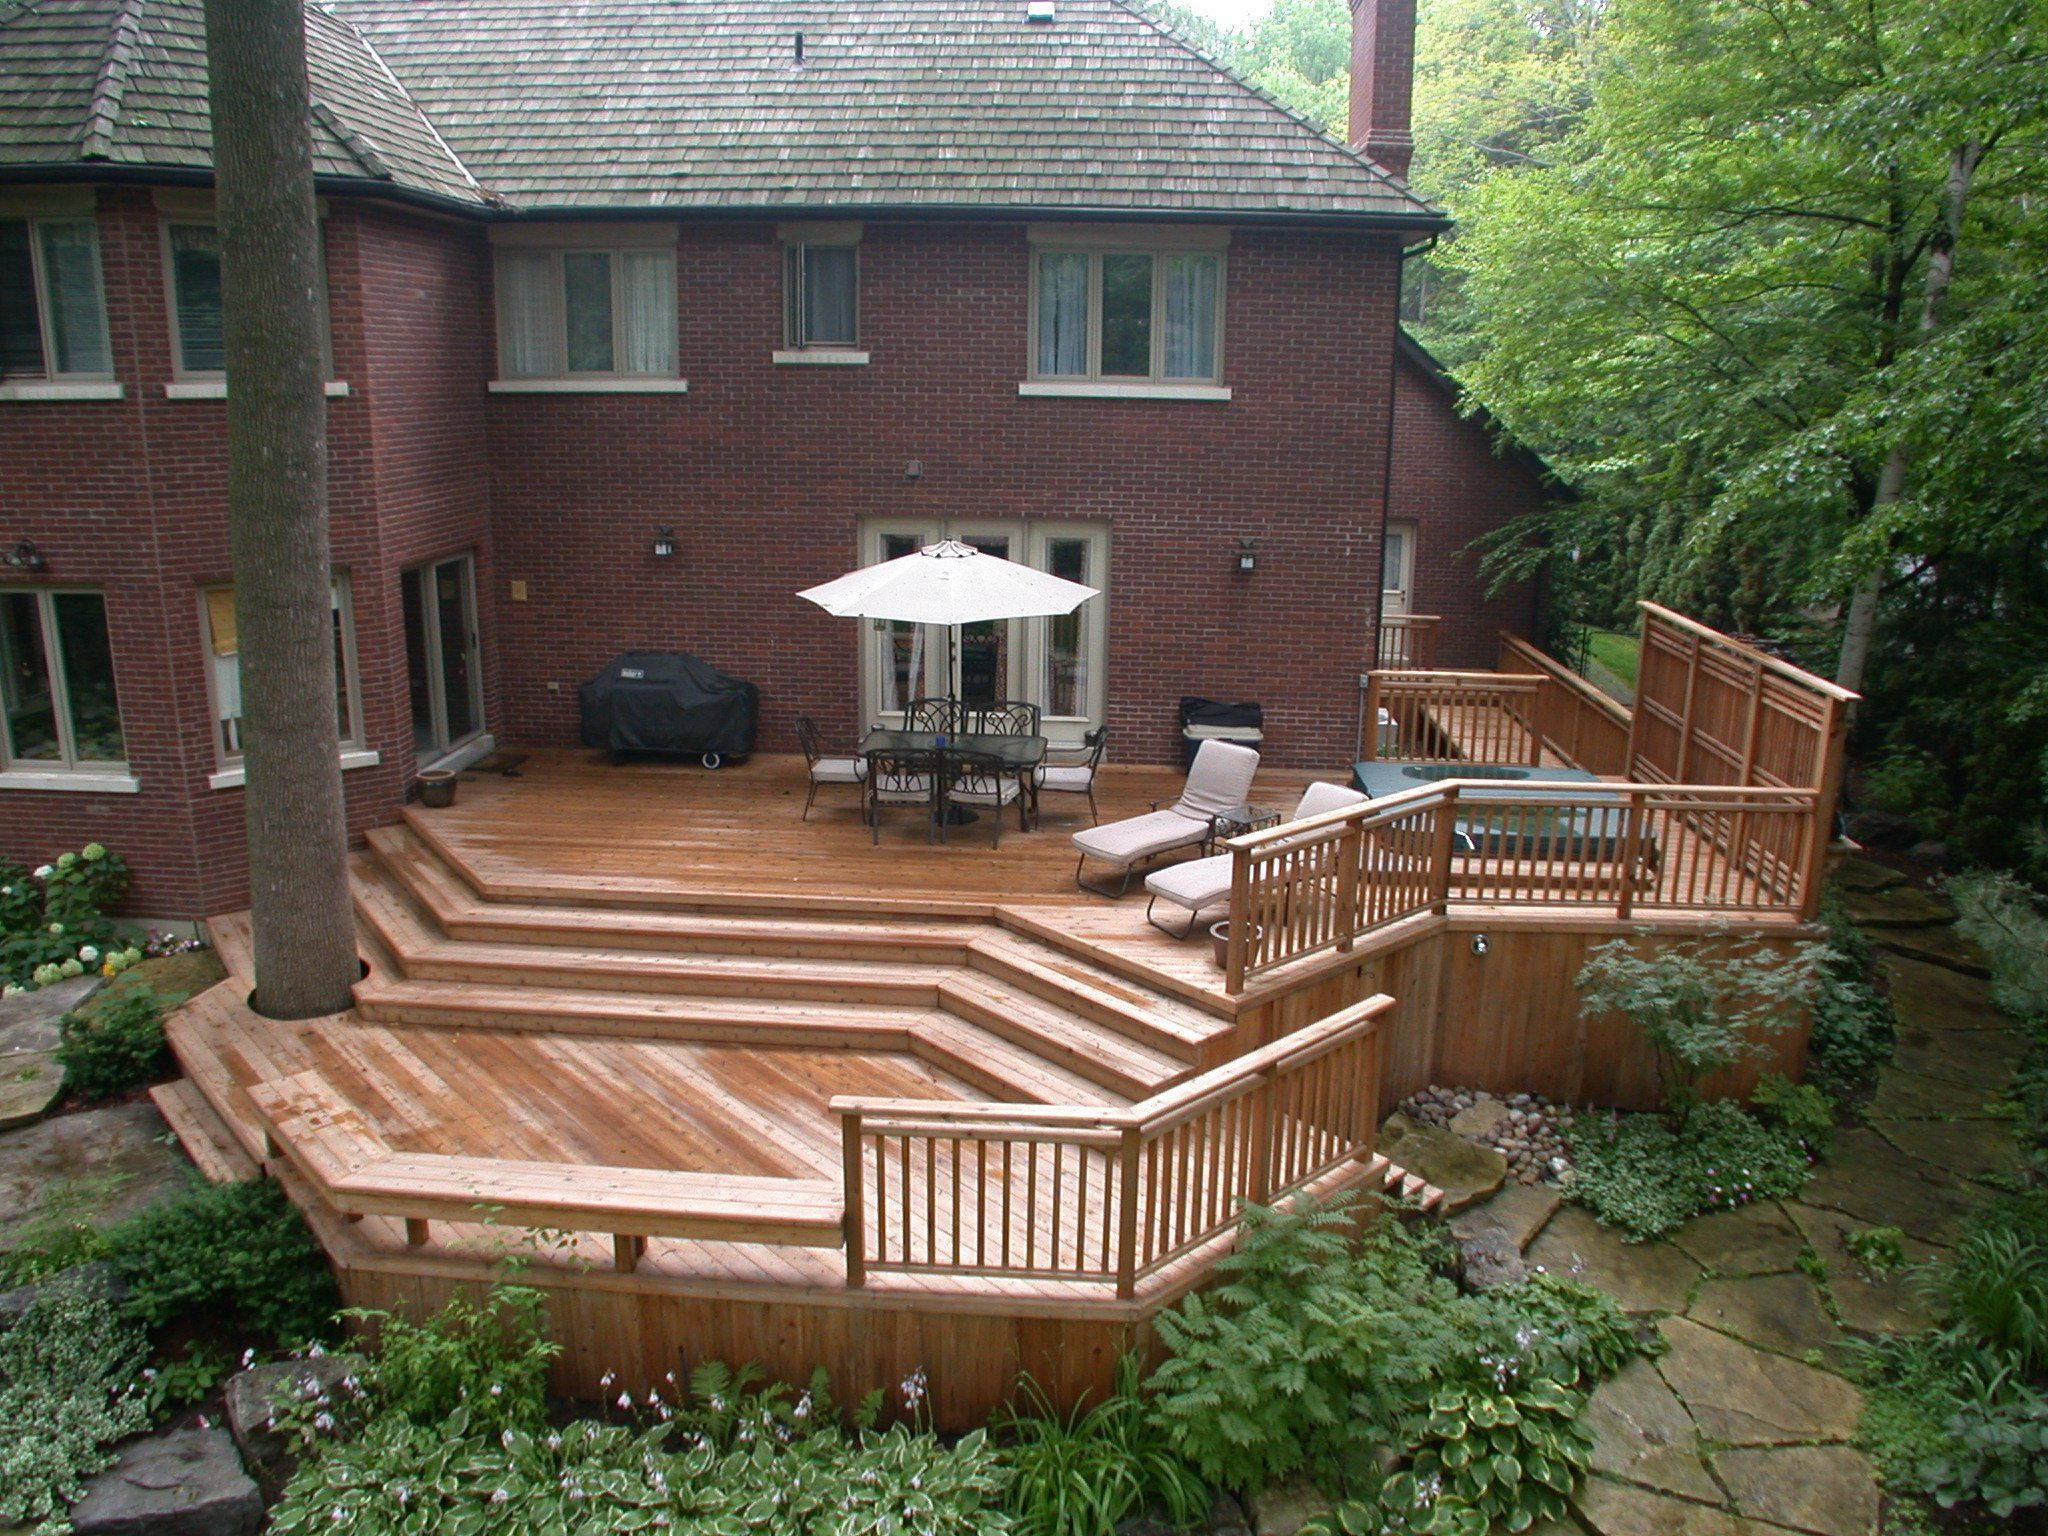 The Complete Guide About Multi Level Decks With 27 Design Ideas Patio Deck Designs Backyard Design Layout Deck Design